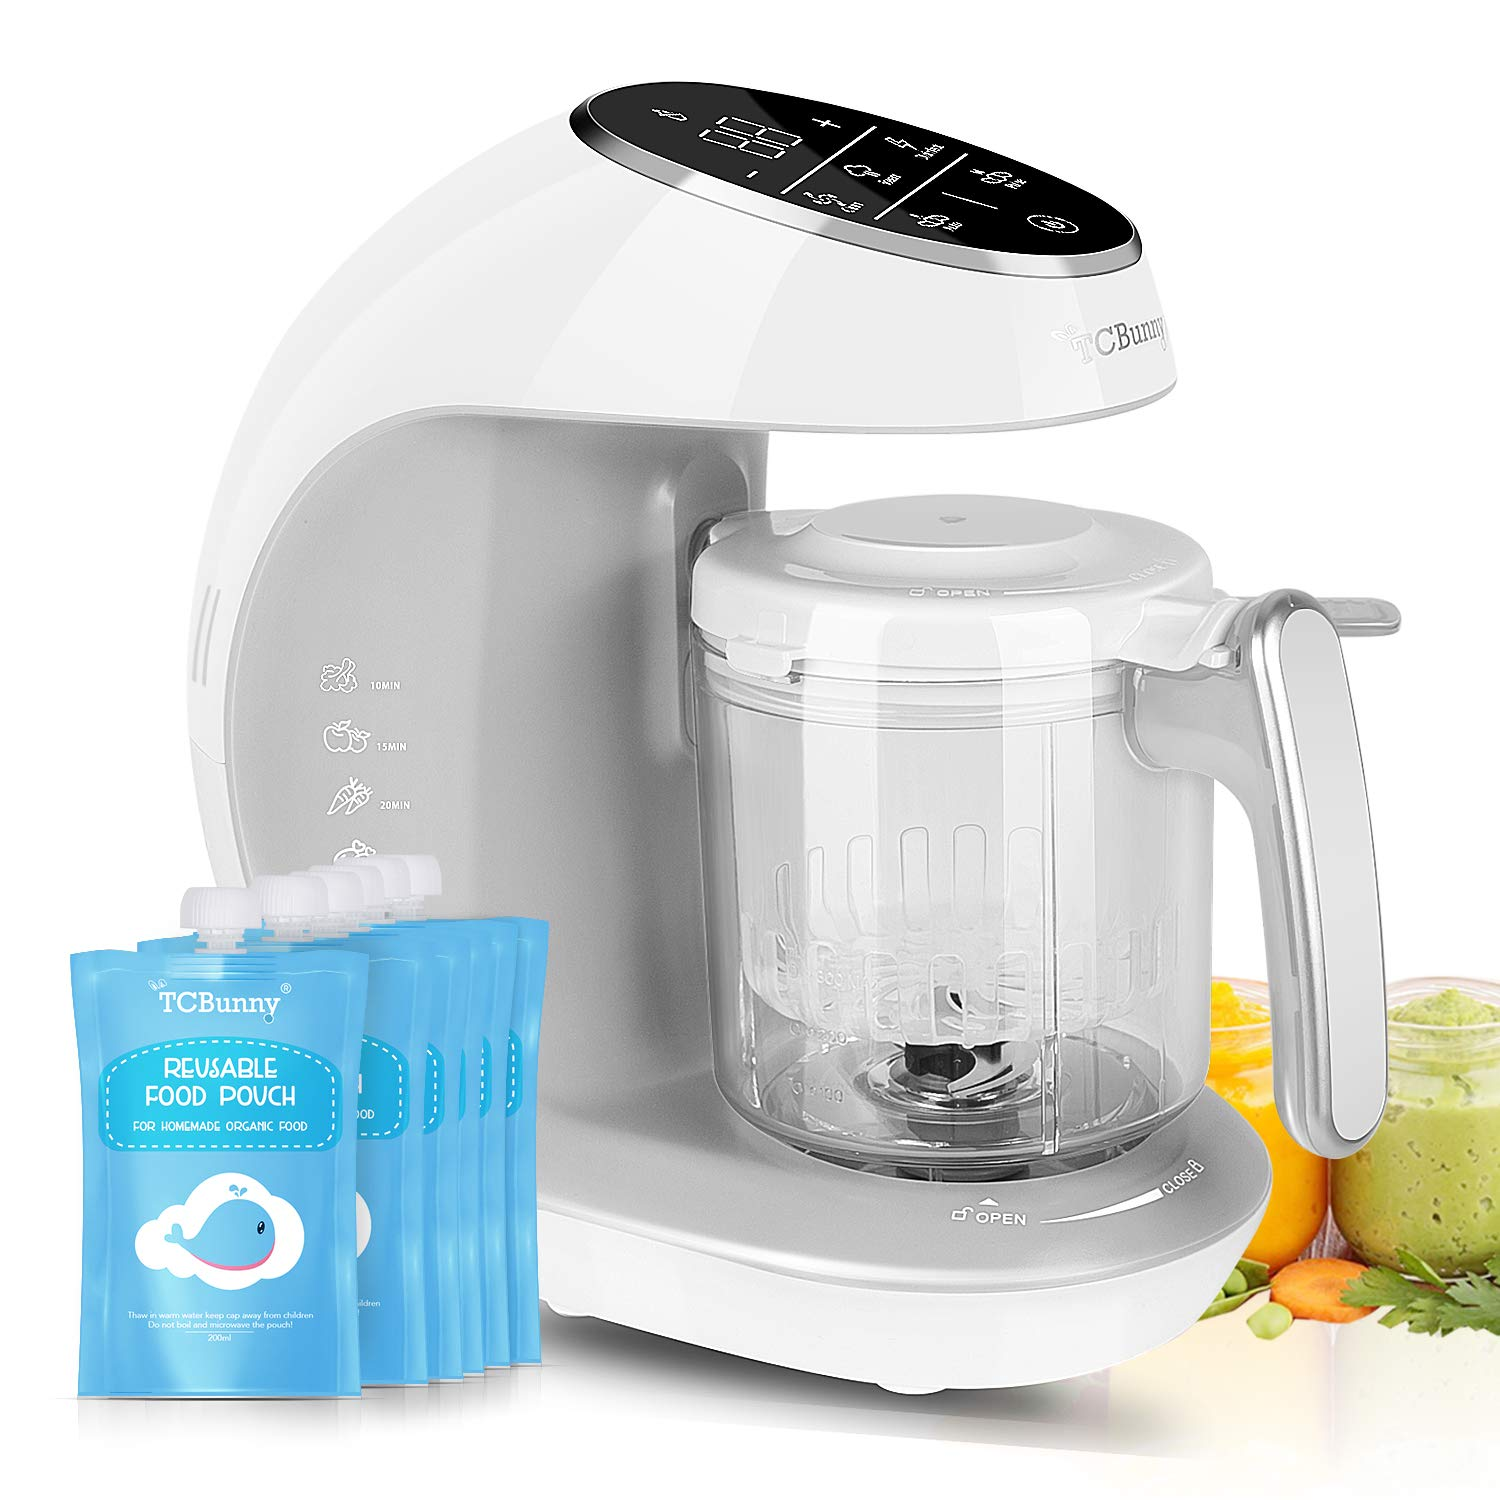 TCBunny Baby Food Maker Processor | 7 in 1 Meal Station with Steam Cooker, Blender, Chopper, Defroster, Reheater, Disinfector, Auto Cleaning Function, 20 Oz Tritan Stirring Cup, White